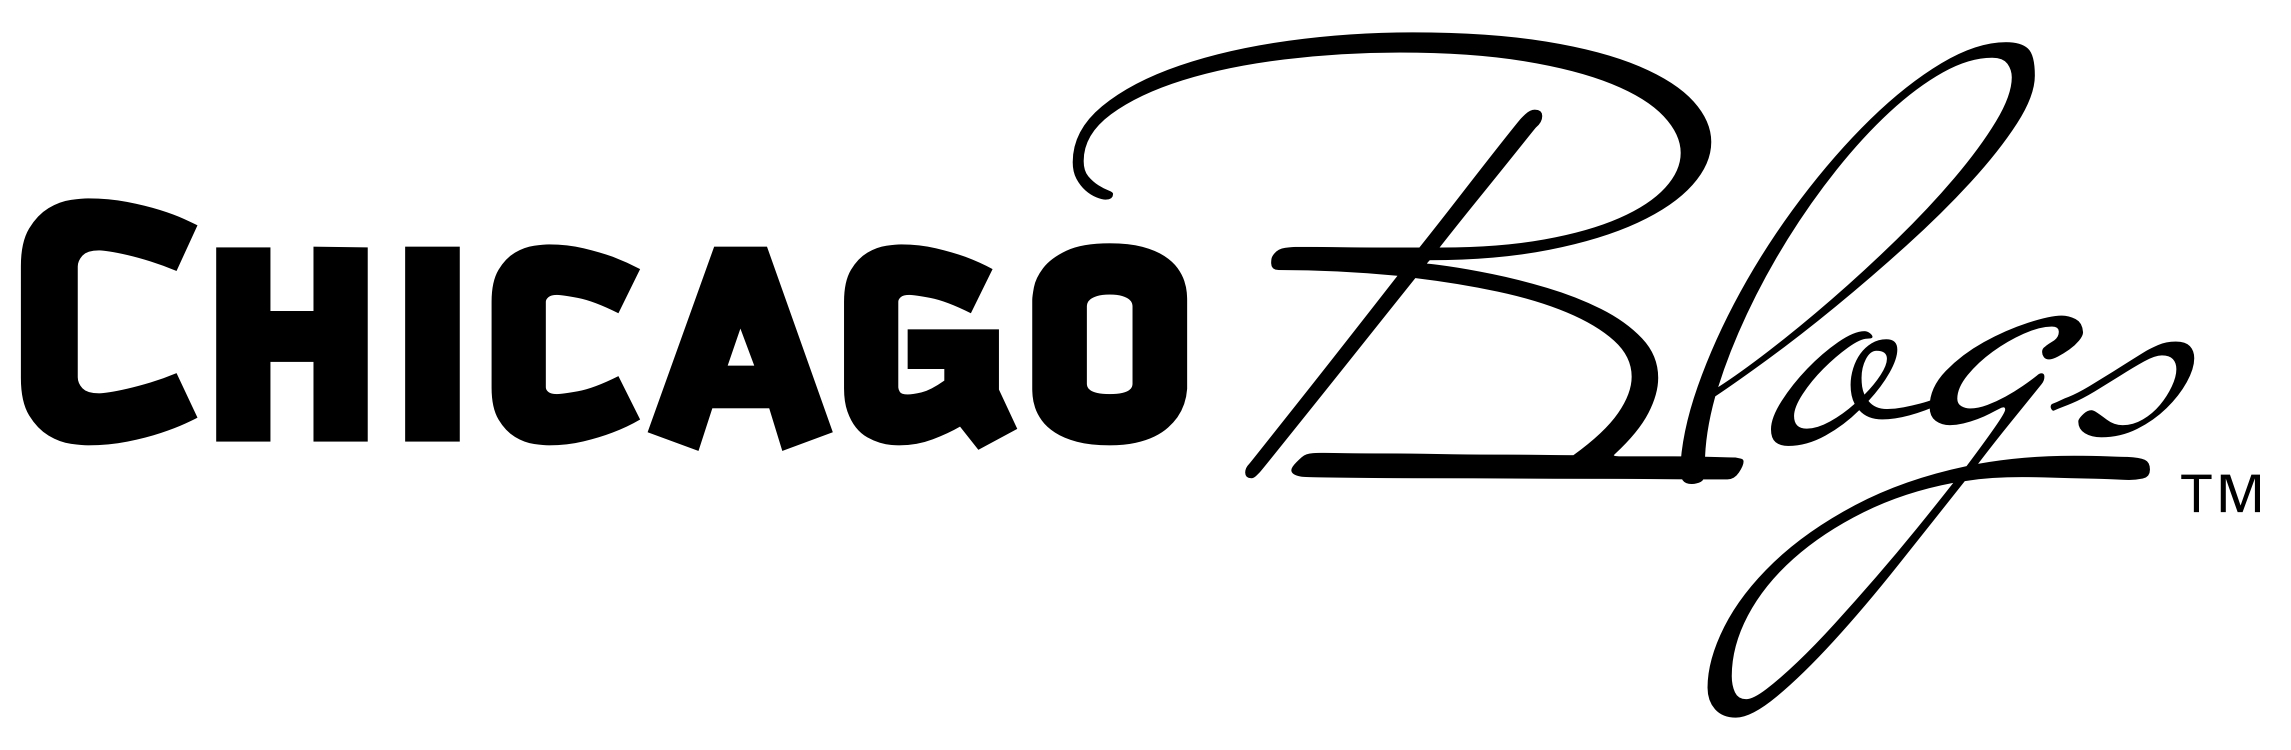 Chicago Blogs Meetup Group Supports Week 2016 - RSVP NOW!